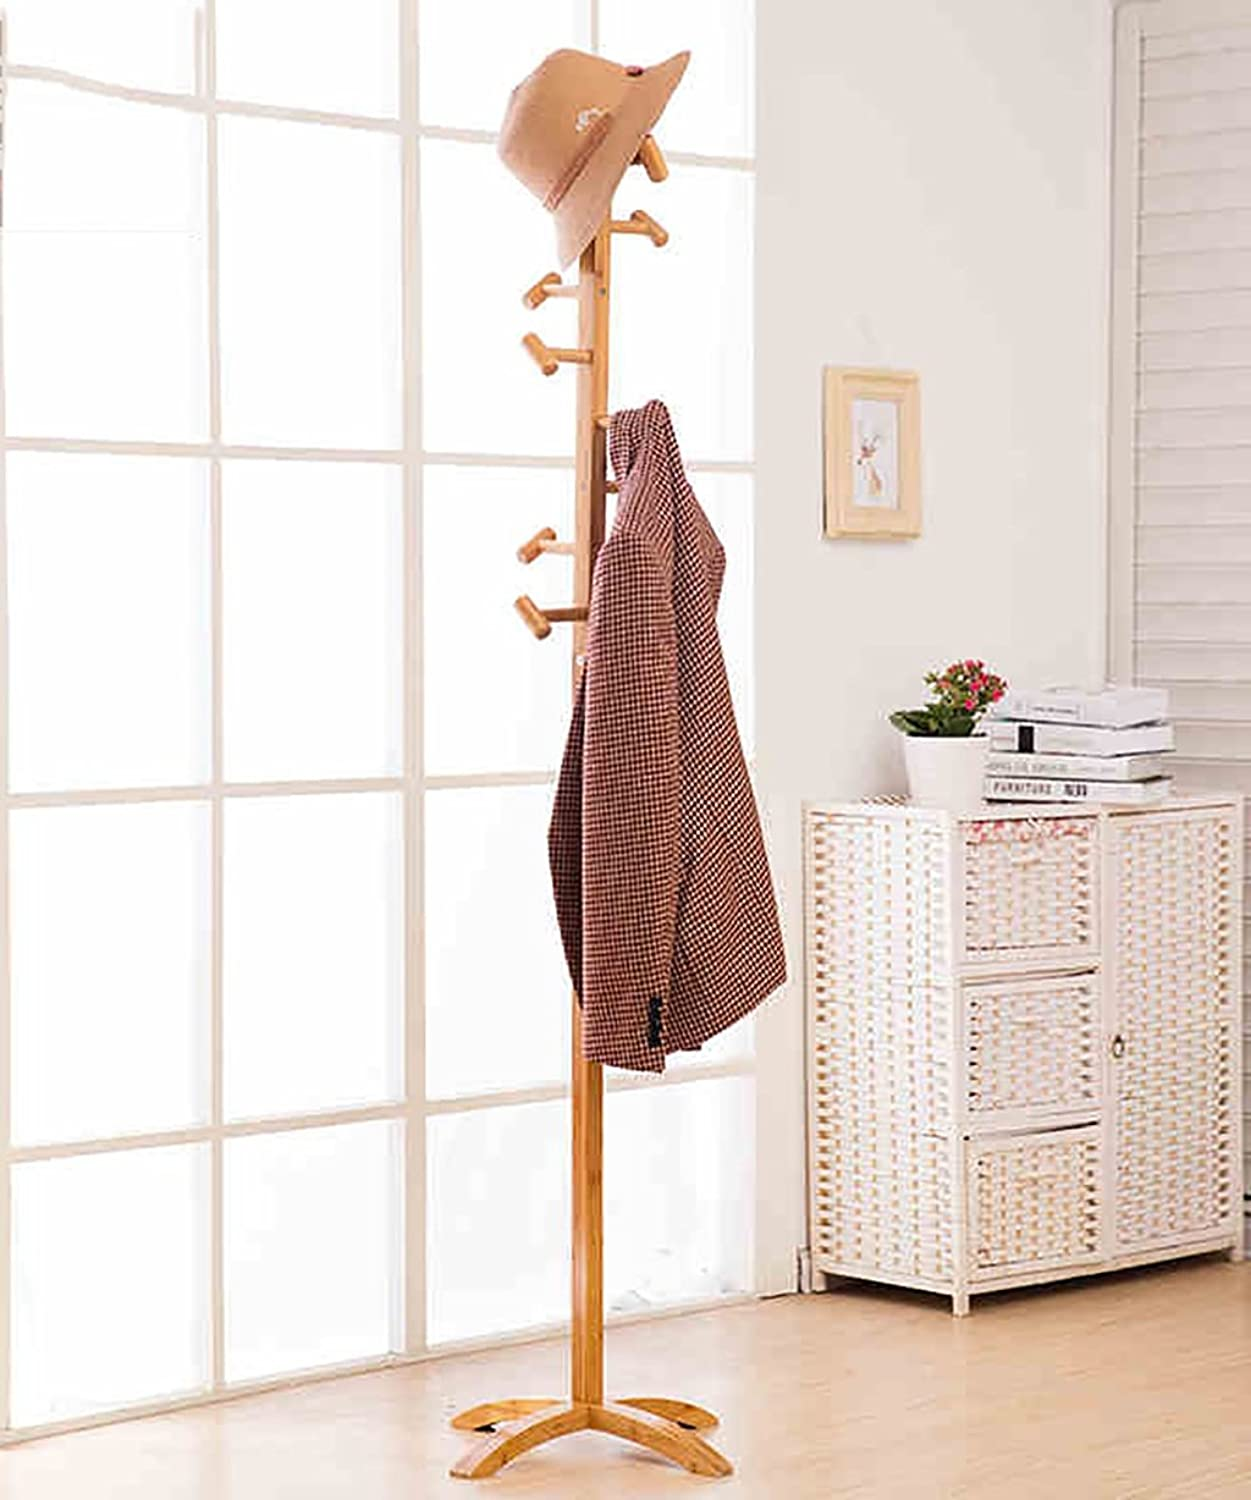 KKCF European Modern Simple Living Room Bedroom Hanger Solid Bamboo Floor Coat Racks (Size   B)